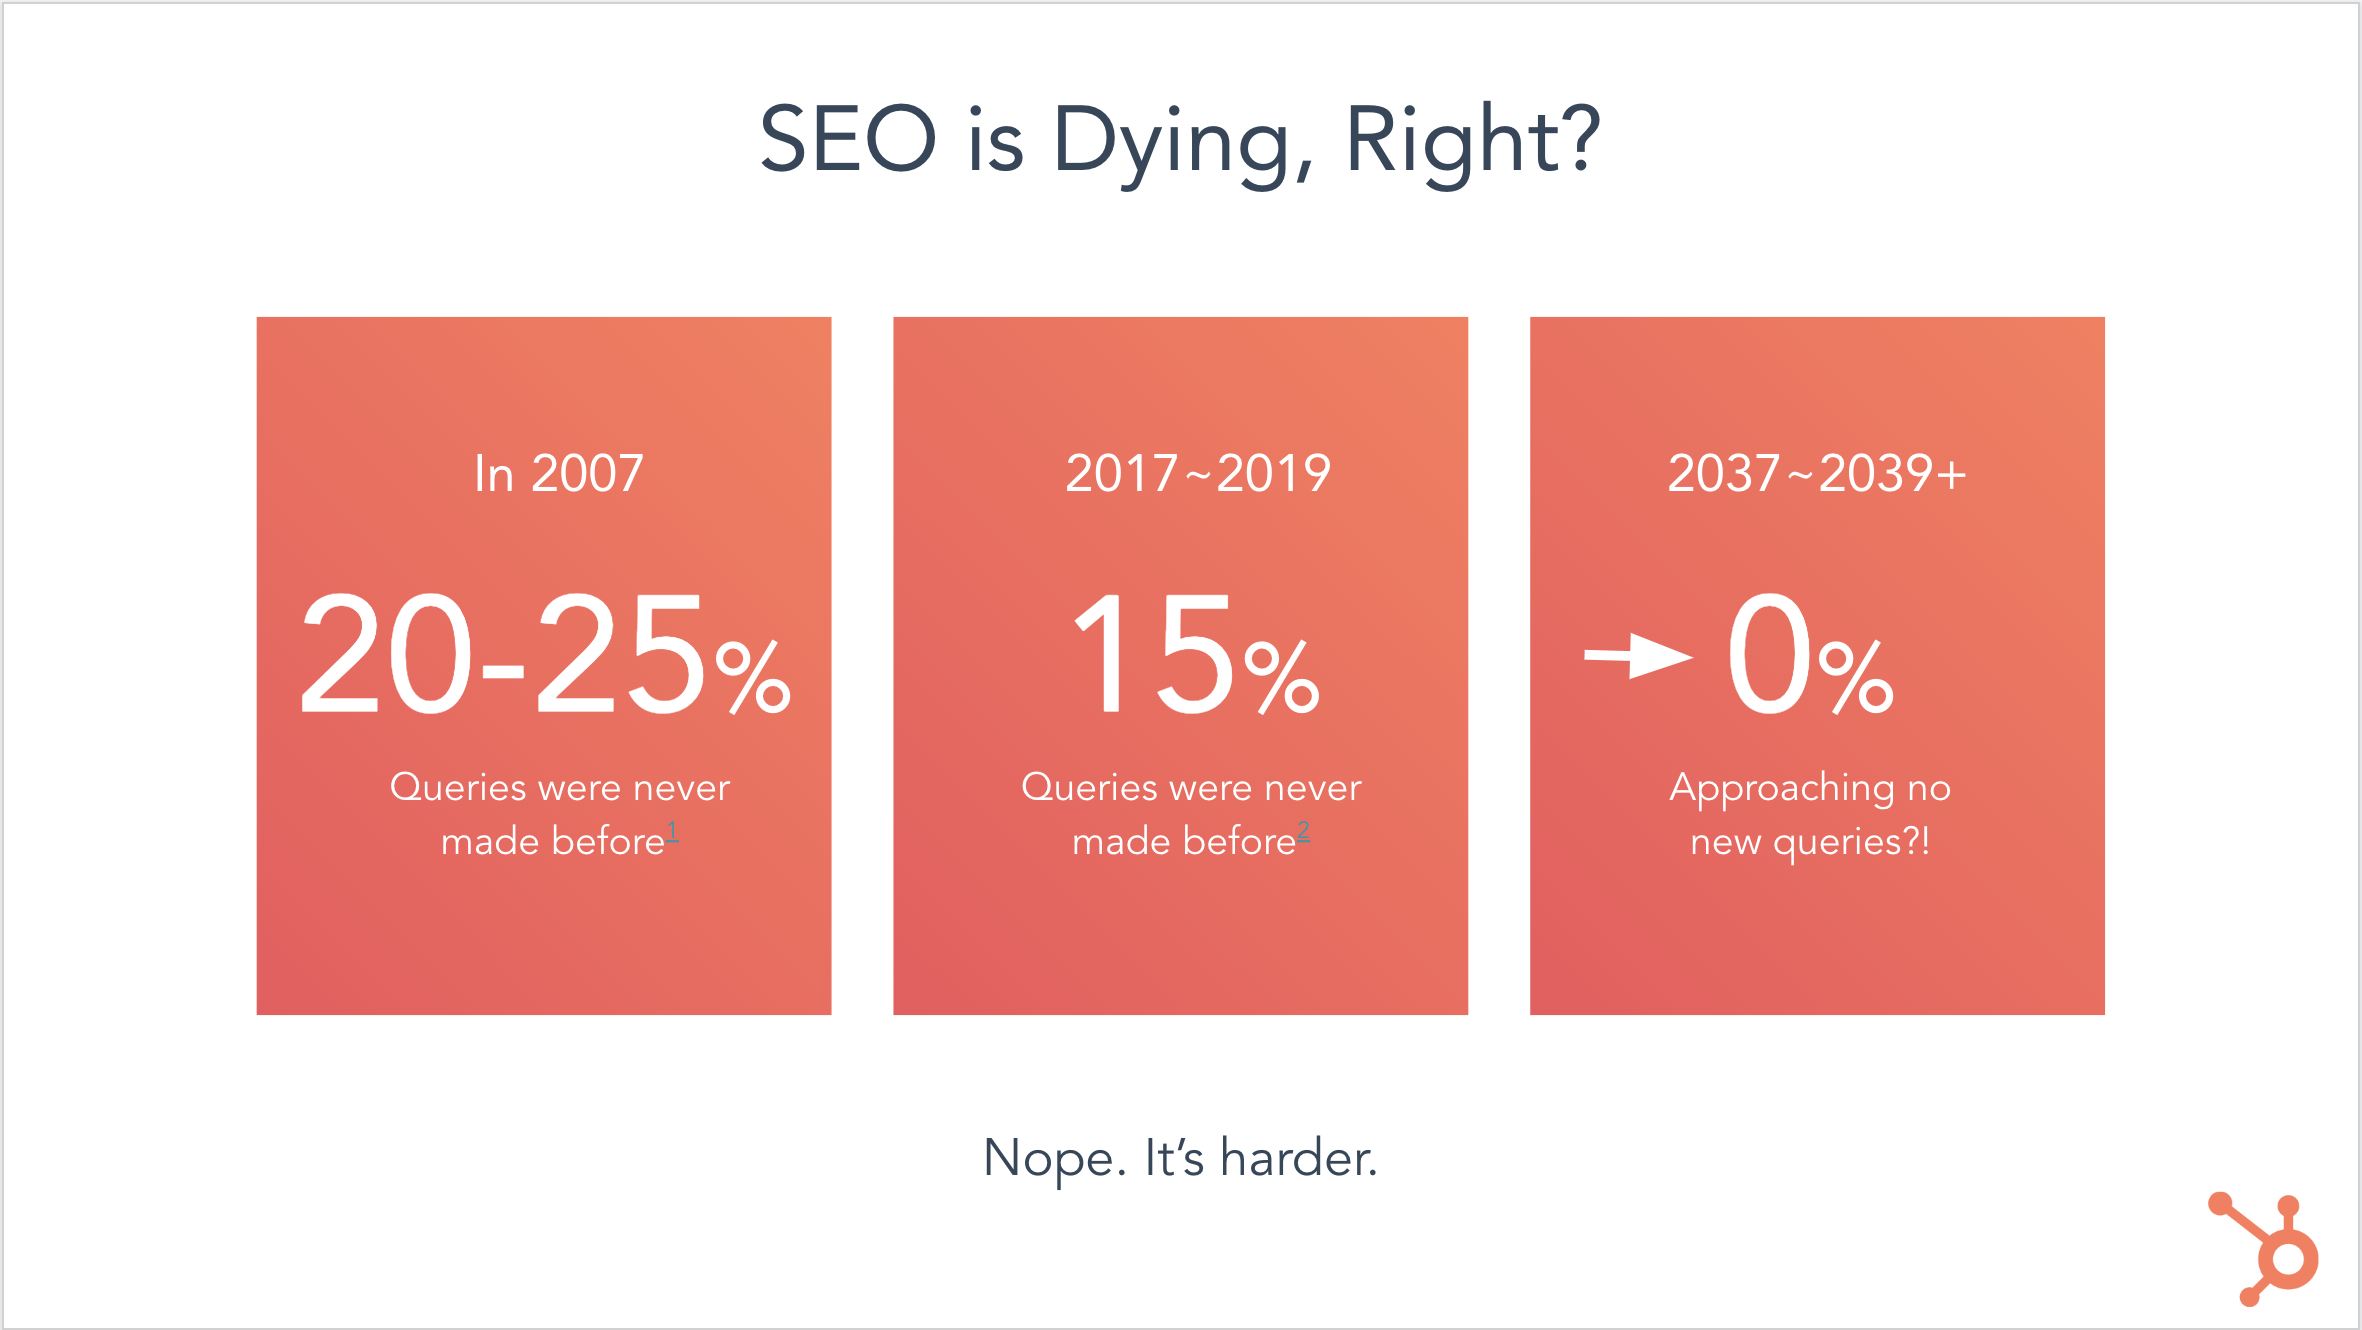 SEO is Dying, Right - Victor Pan